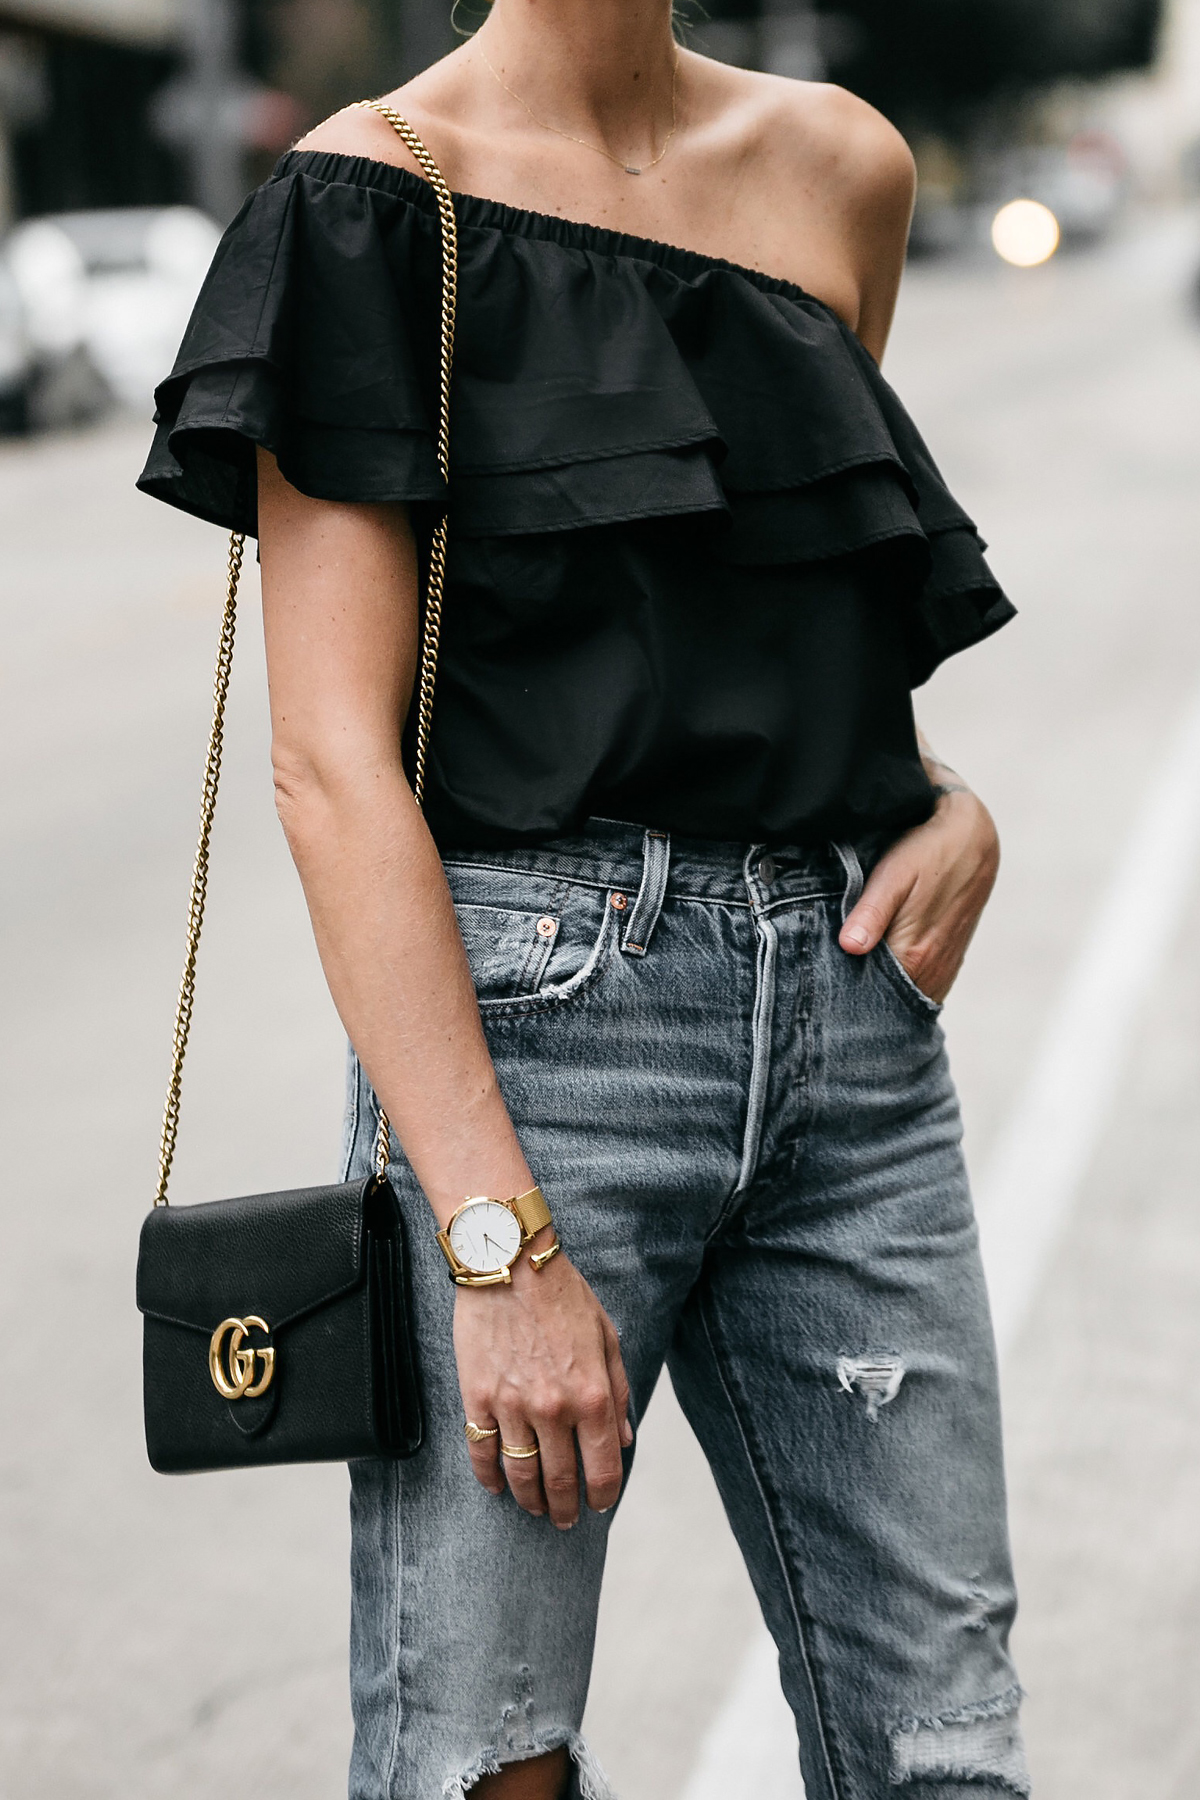 nordstrom black one shoulder ruffle top distressed jeans outfit gucci marmont handbag street style dallas blogger fashion blogger